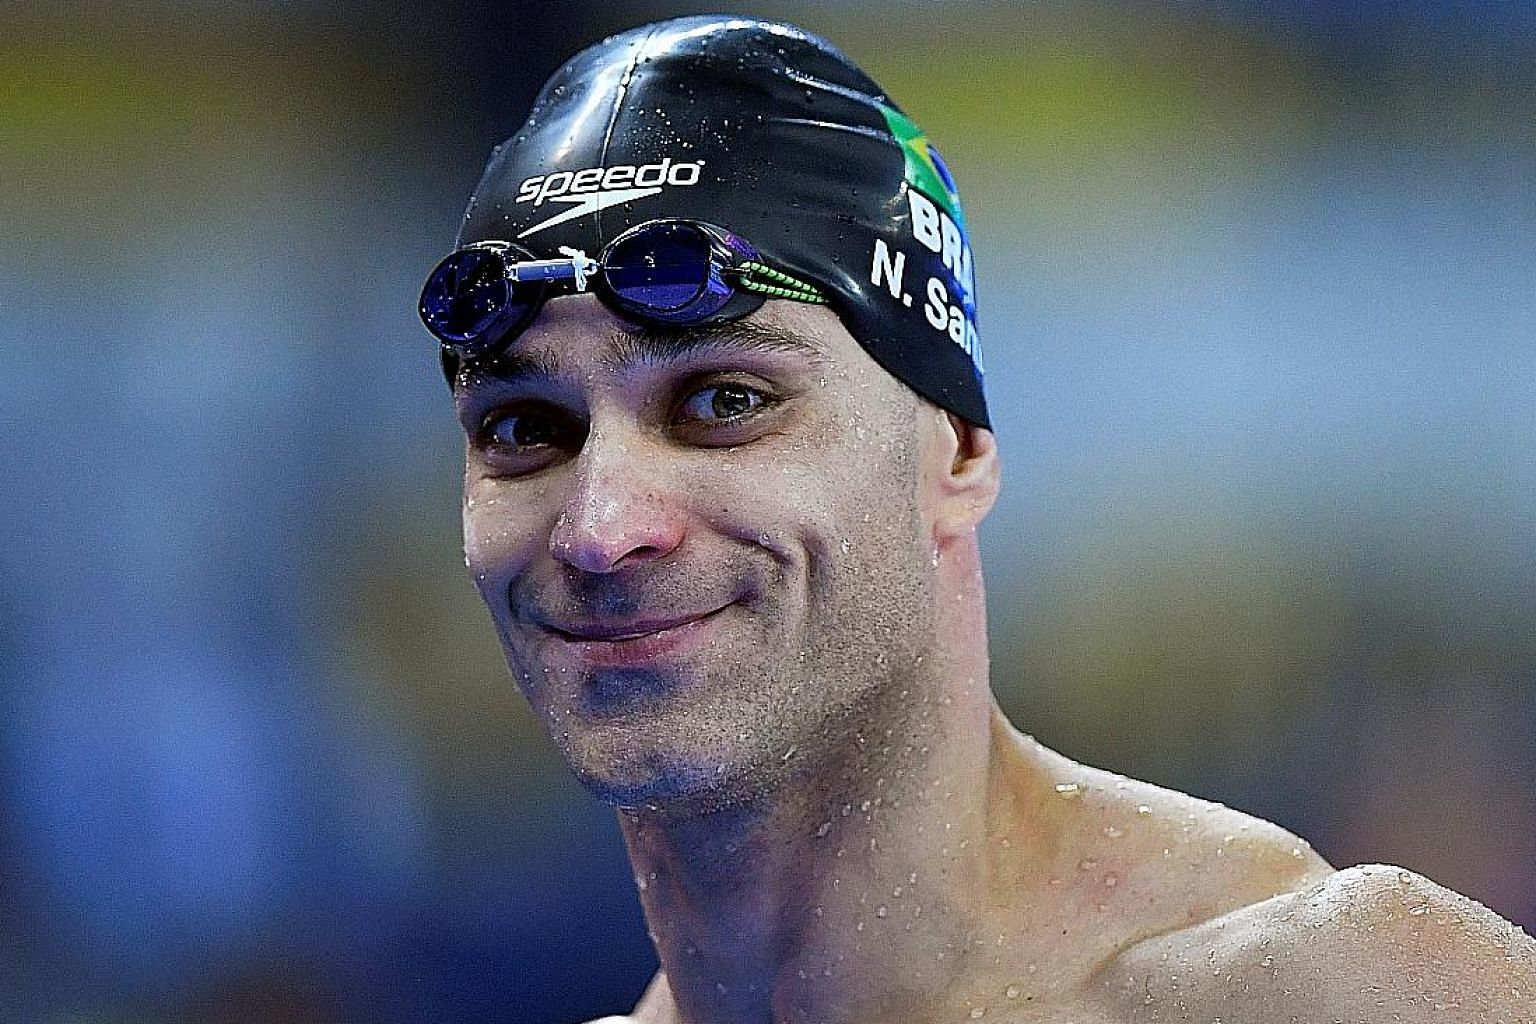 Brazil's Nicholas Santos won the 50m fly gold in a championship record of 21.81 seconds yesterday, beating South Africa's Chad le Clos by 0.16sec.